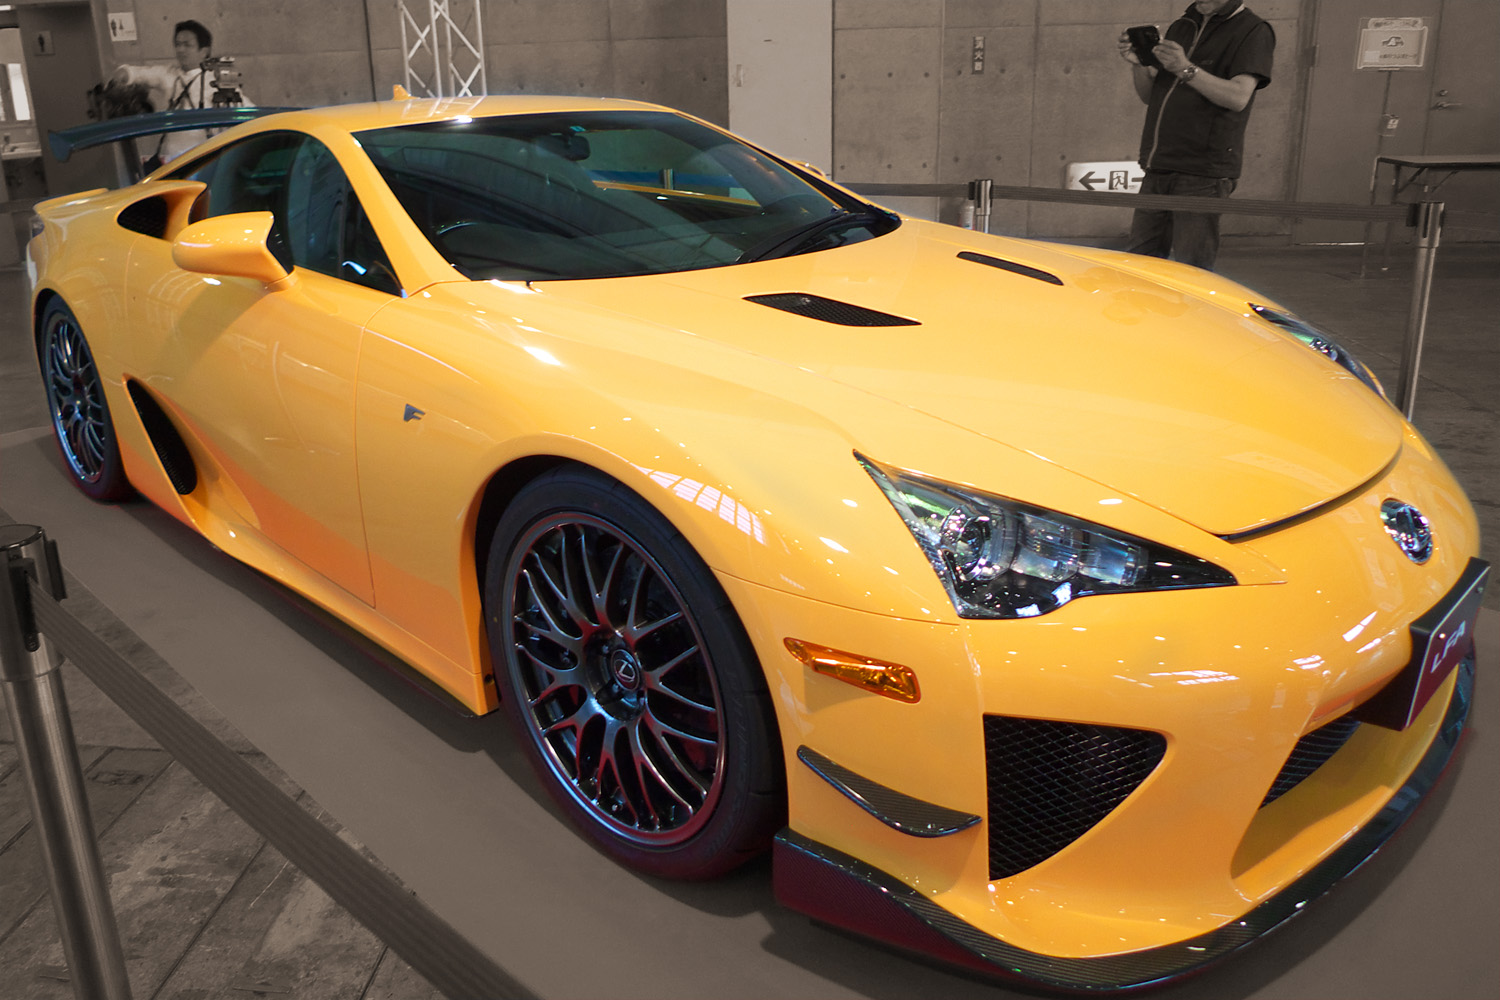 LFA -Lexus Future Advance-_e0140159_19311160.jpg